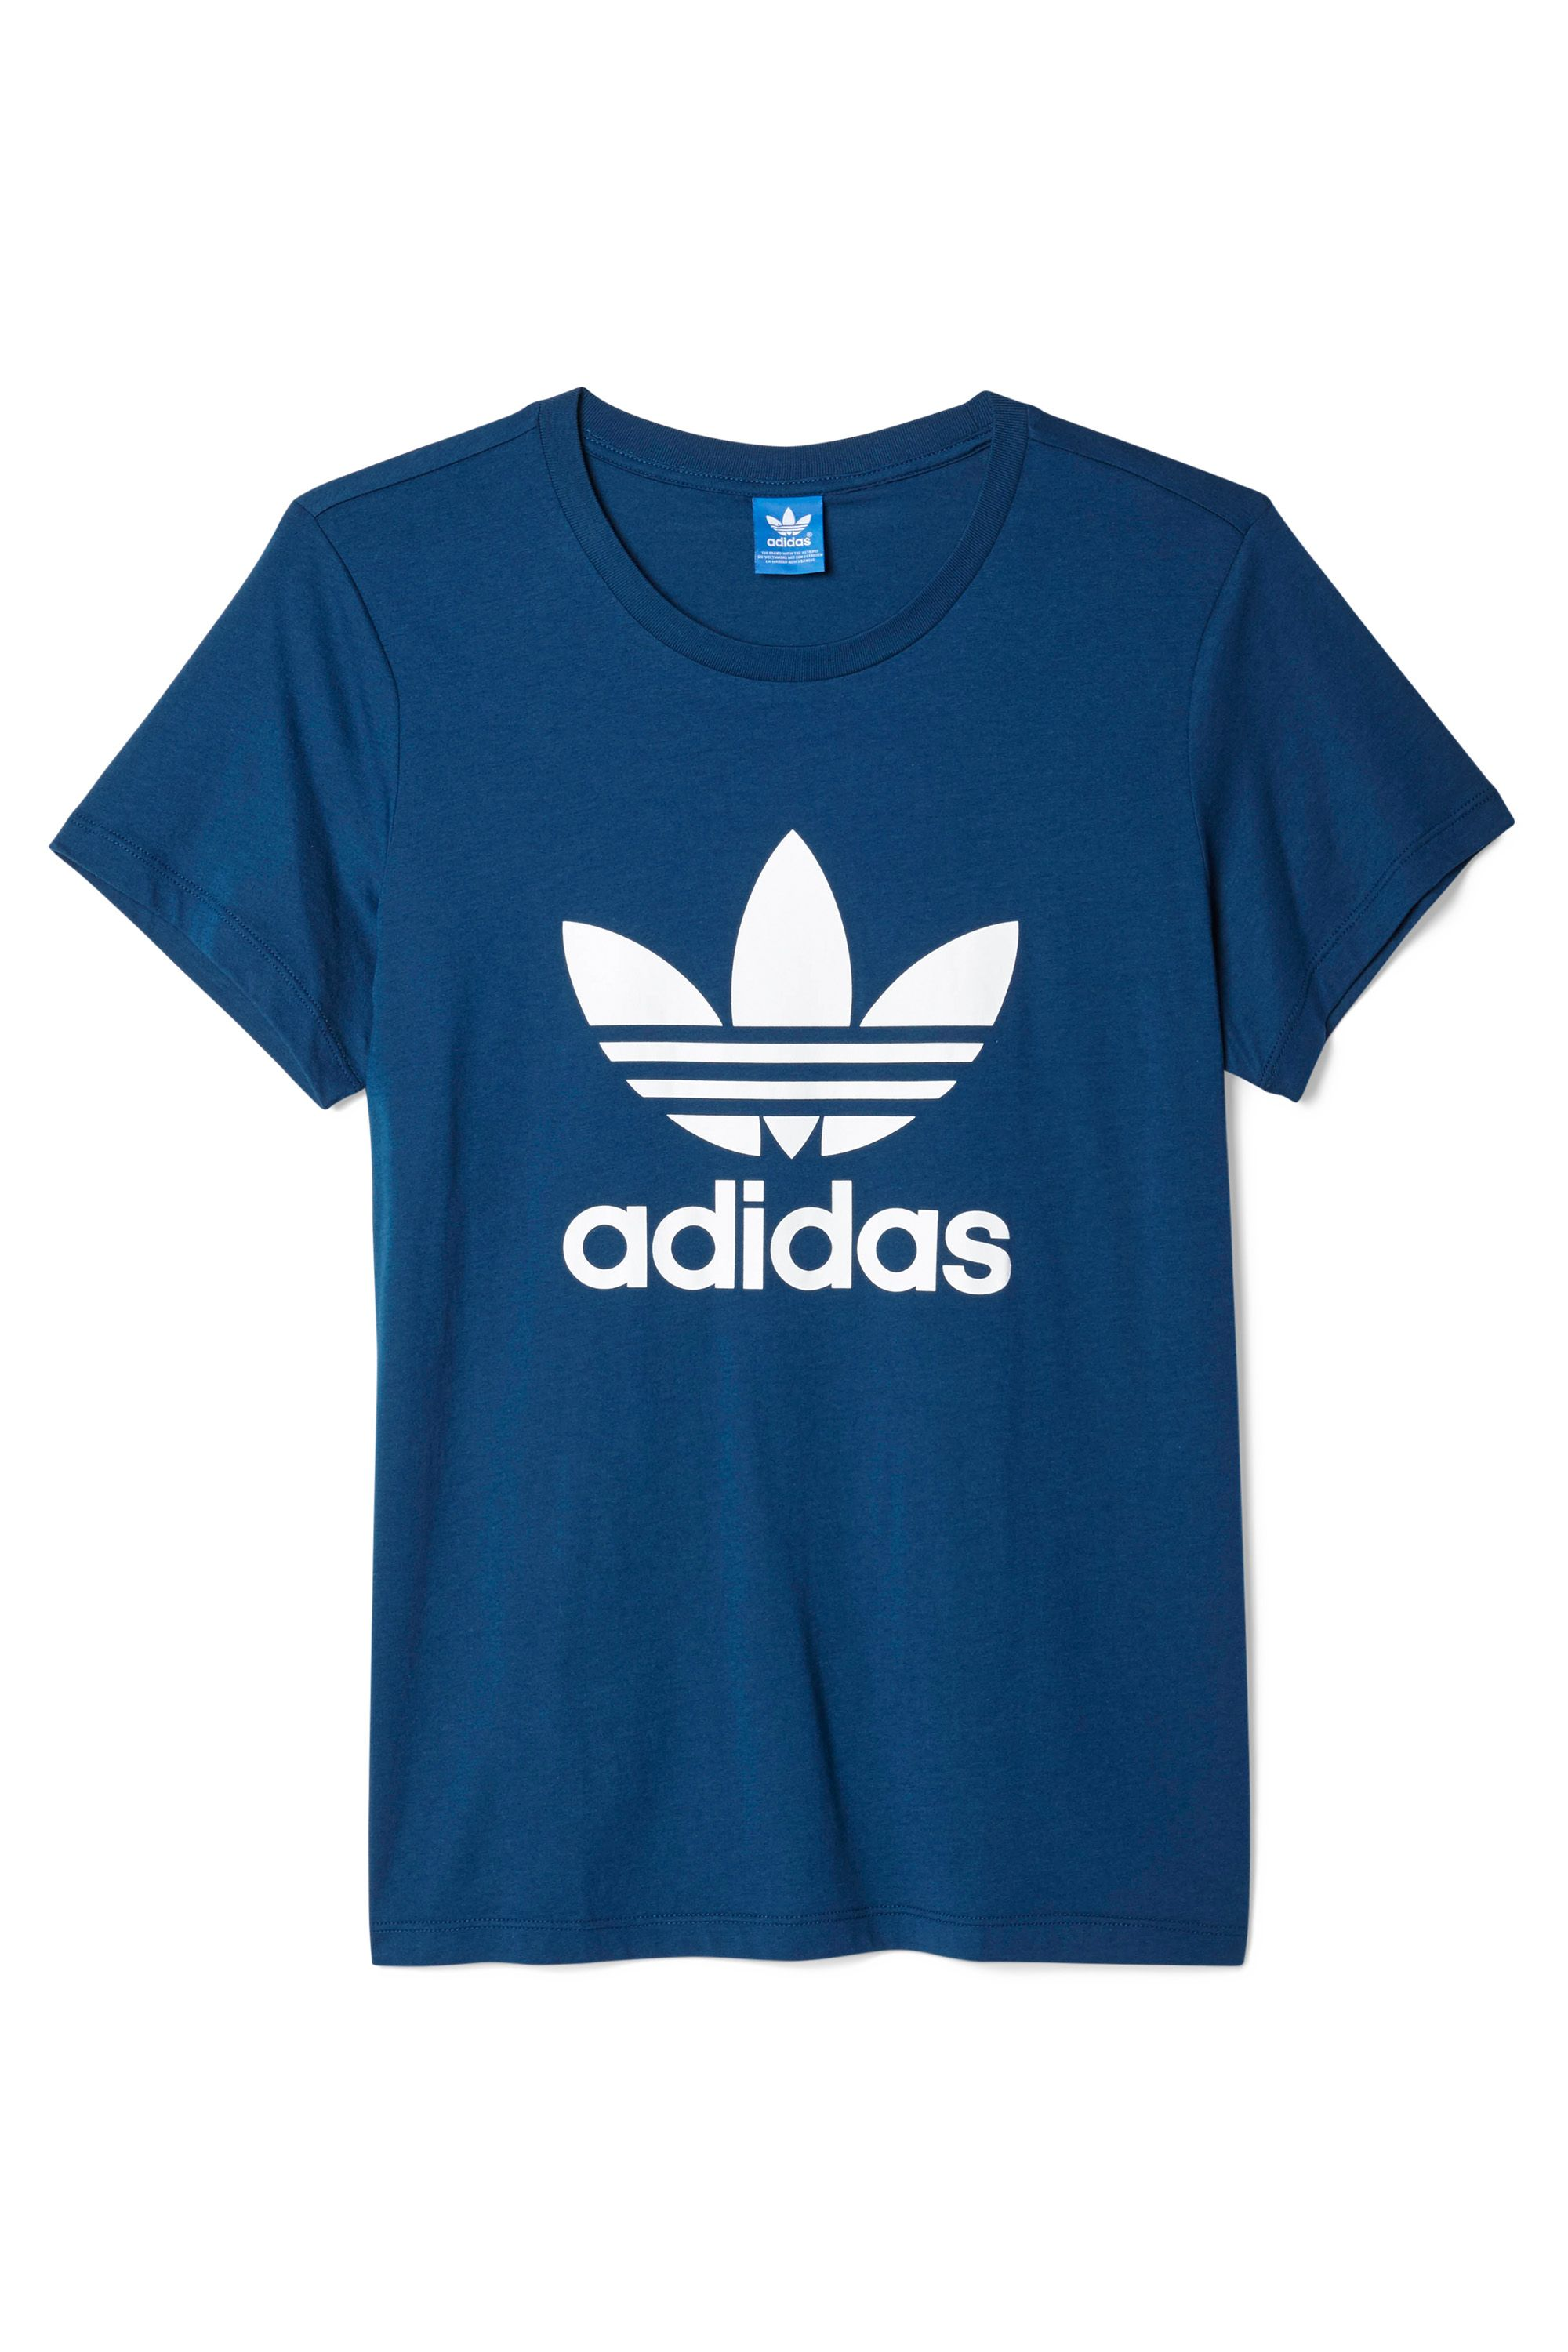 "<p>Cotton T-shirt, ADIDAS ORIGINALS, $30, visit <a href=""http://www.adidas.com/us/search?q=trefoil+tee"" target=""_blank"">adidas.com</a></p>"